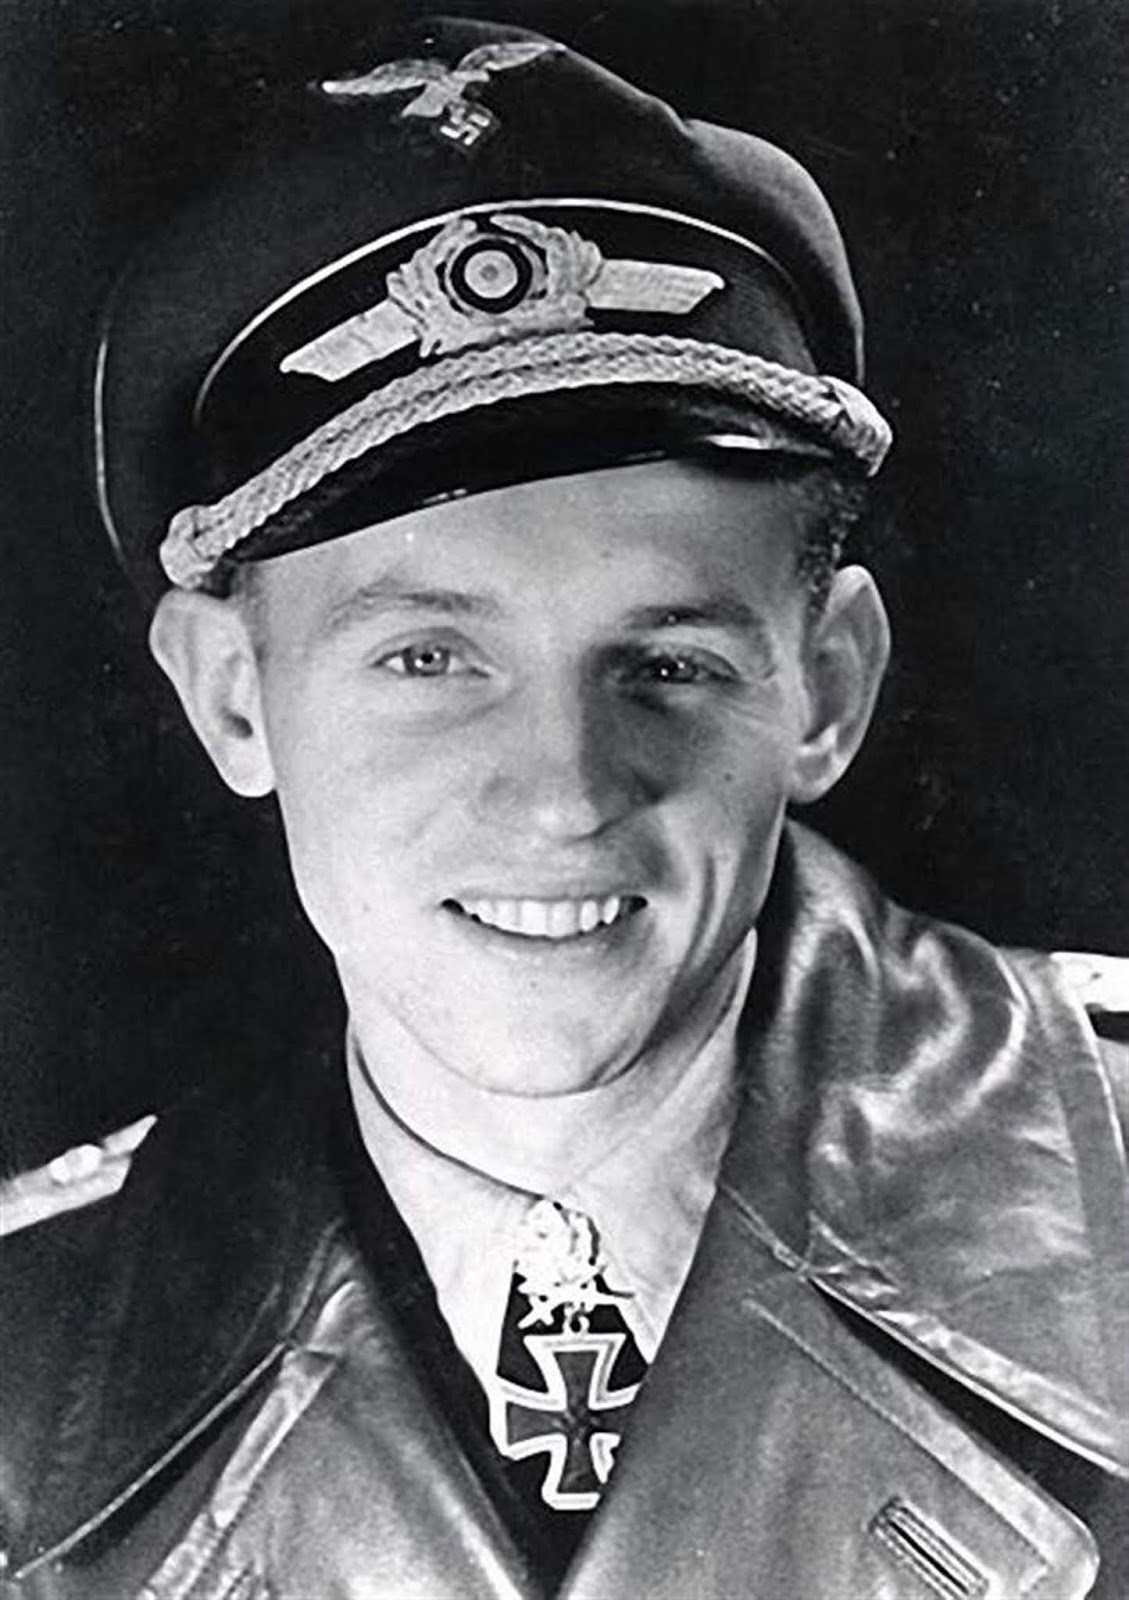 This is Erich Hartmann. Maybe the greatest Luftwaffe pilot of them all. Maybe you can tell from this shot why they called him